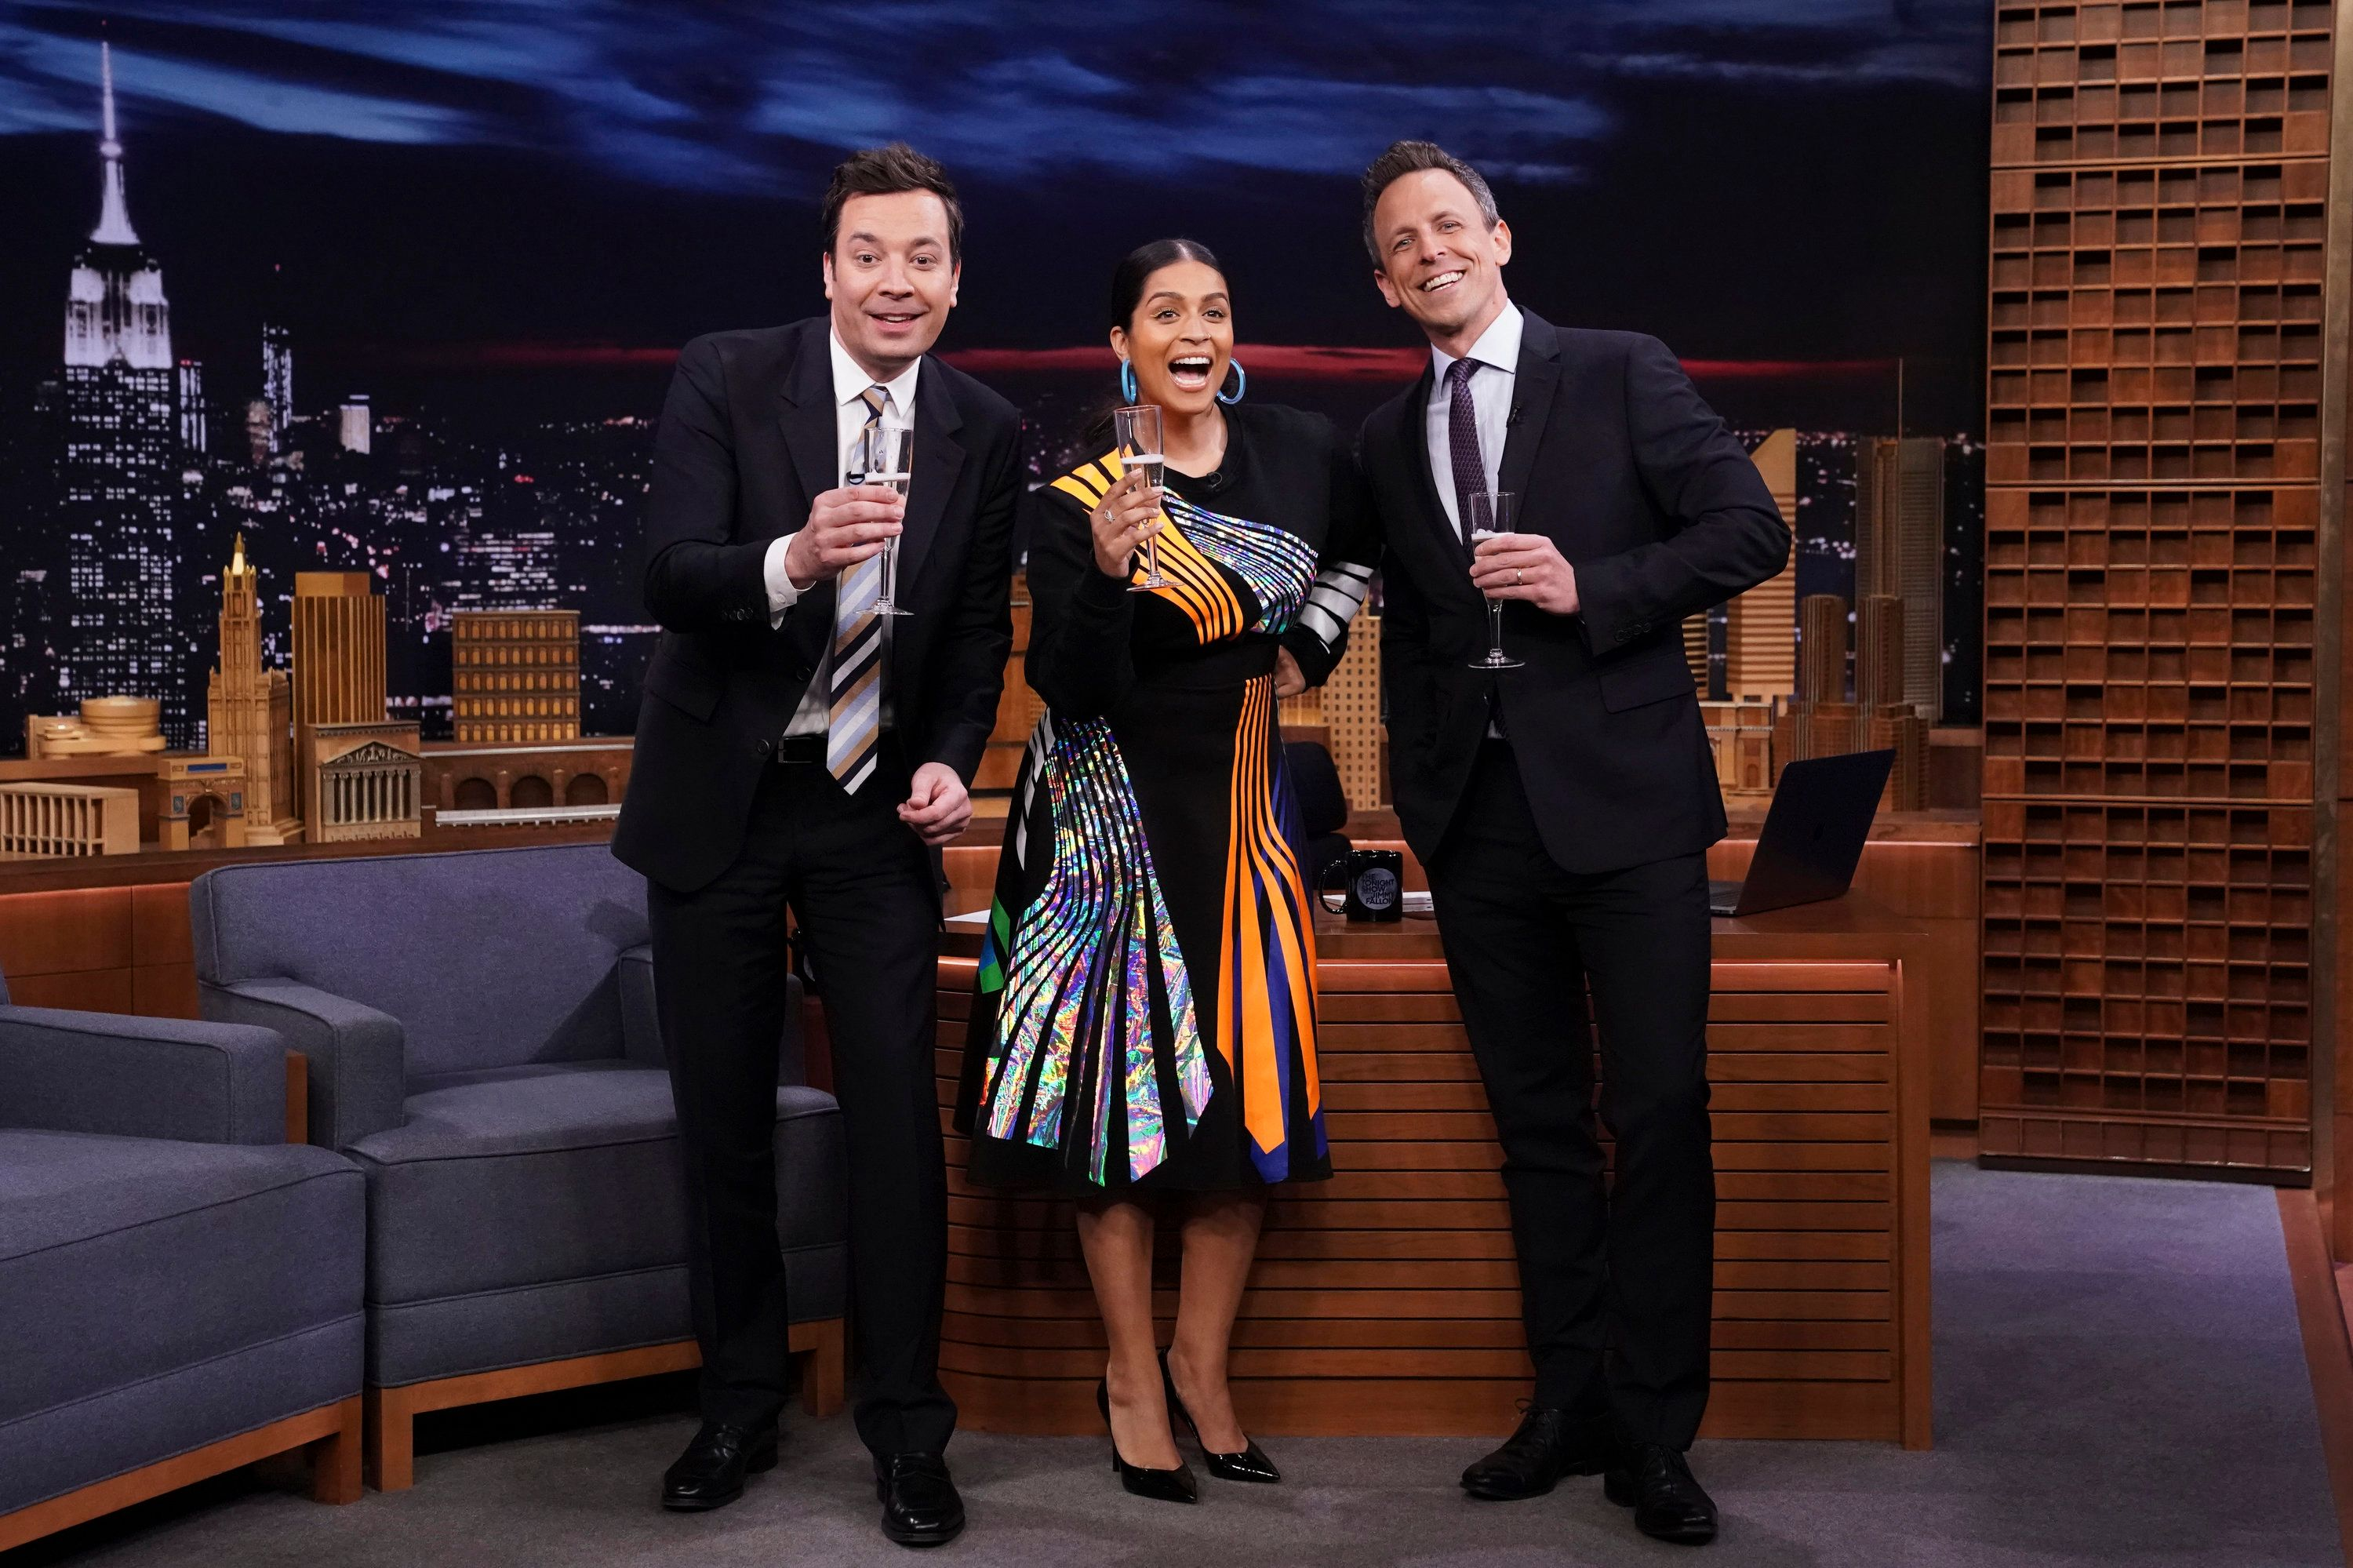 Jimmy Fallon, Lilly Singh and Seth Meyers celebrating Singh's new late-night show on